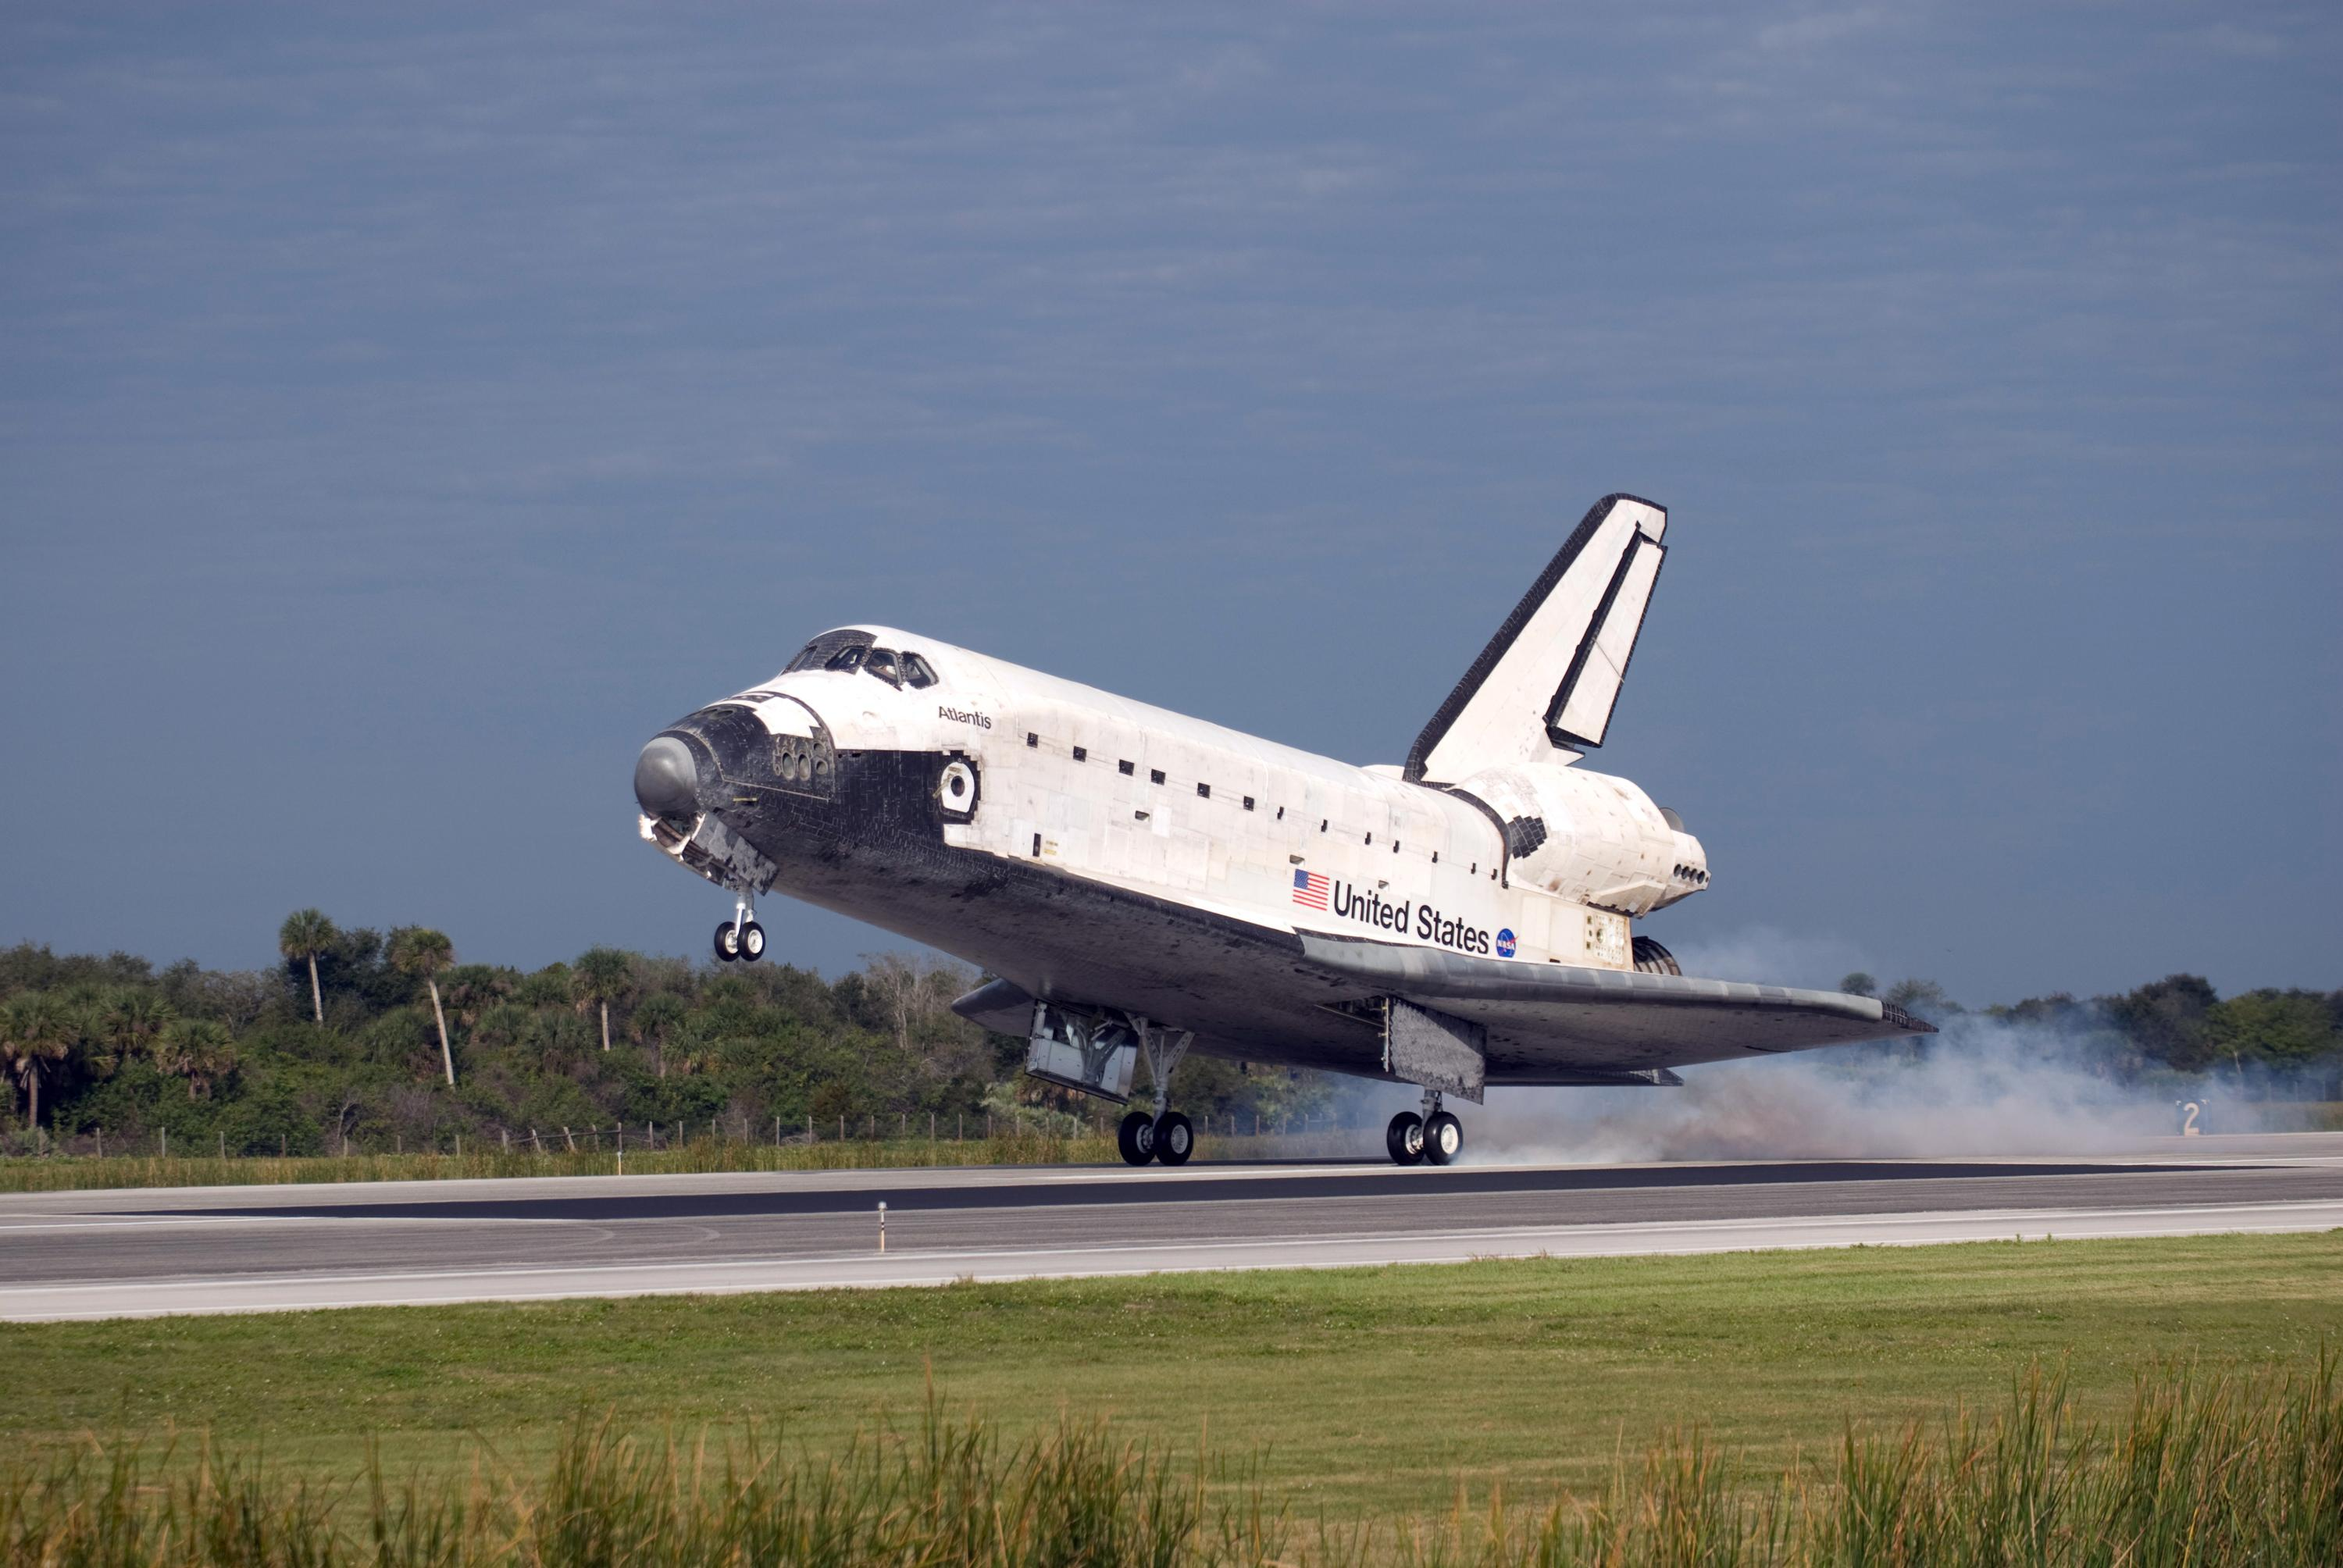 space shuttle landing from inside - photo #16